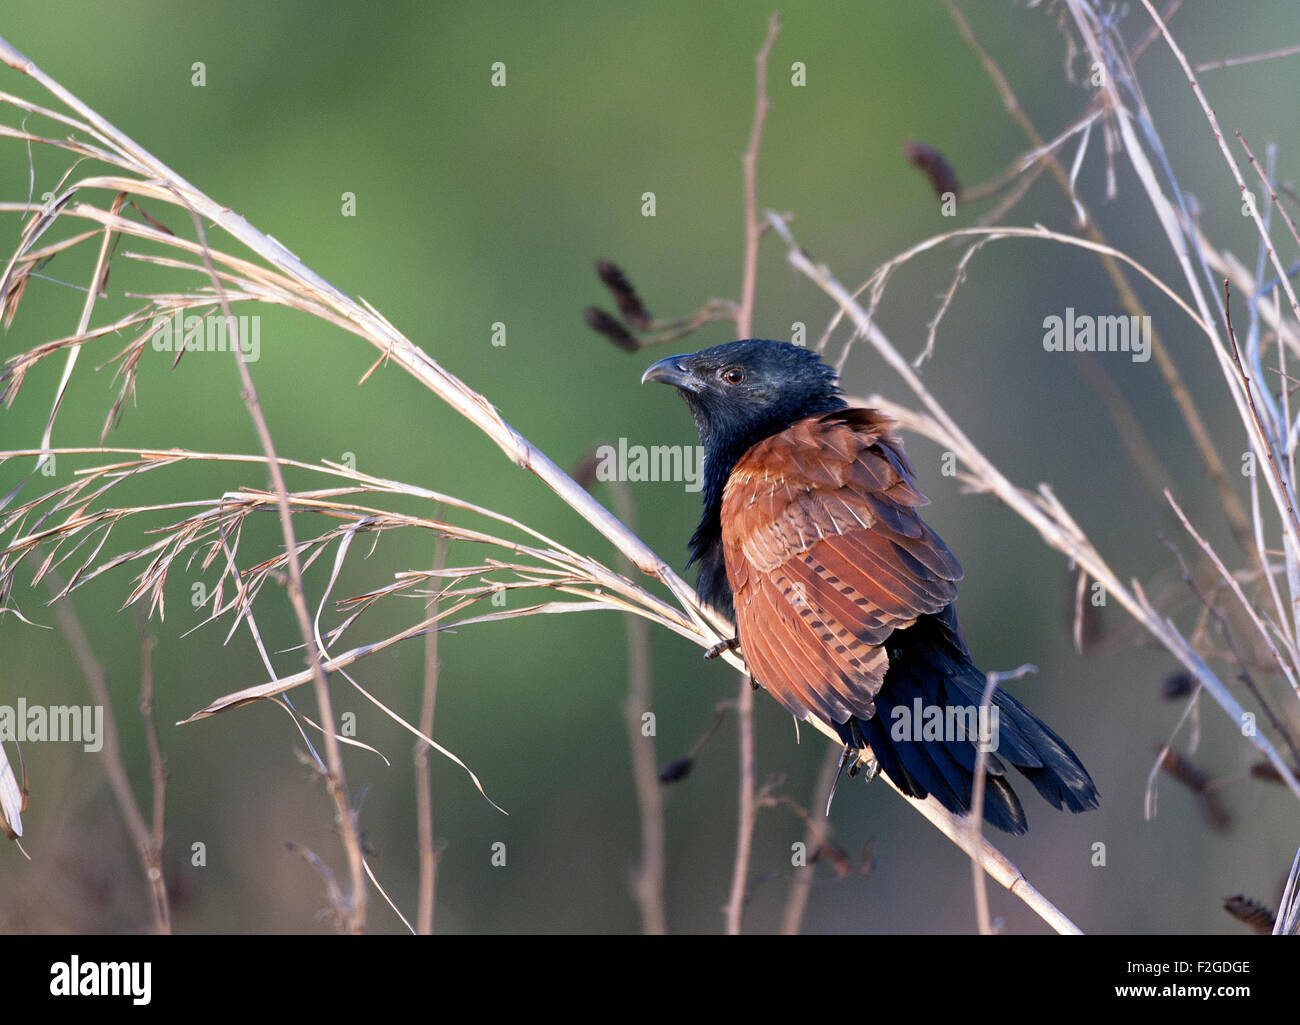 The image of Lesser Coucal ( Centropus bengalensis) was shot in Corbett national park -India - Stock Image